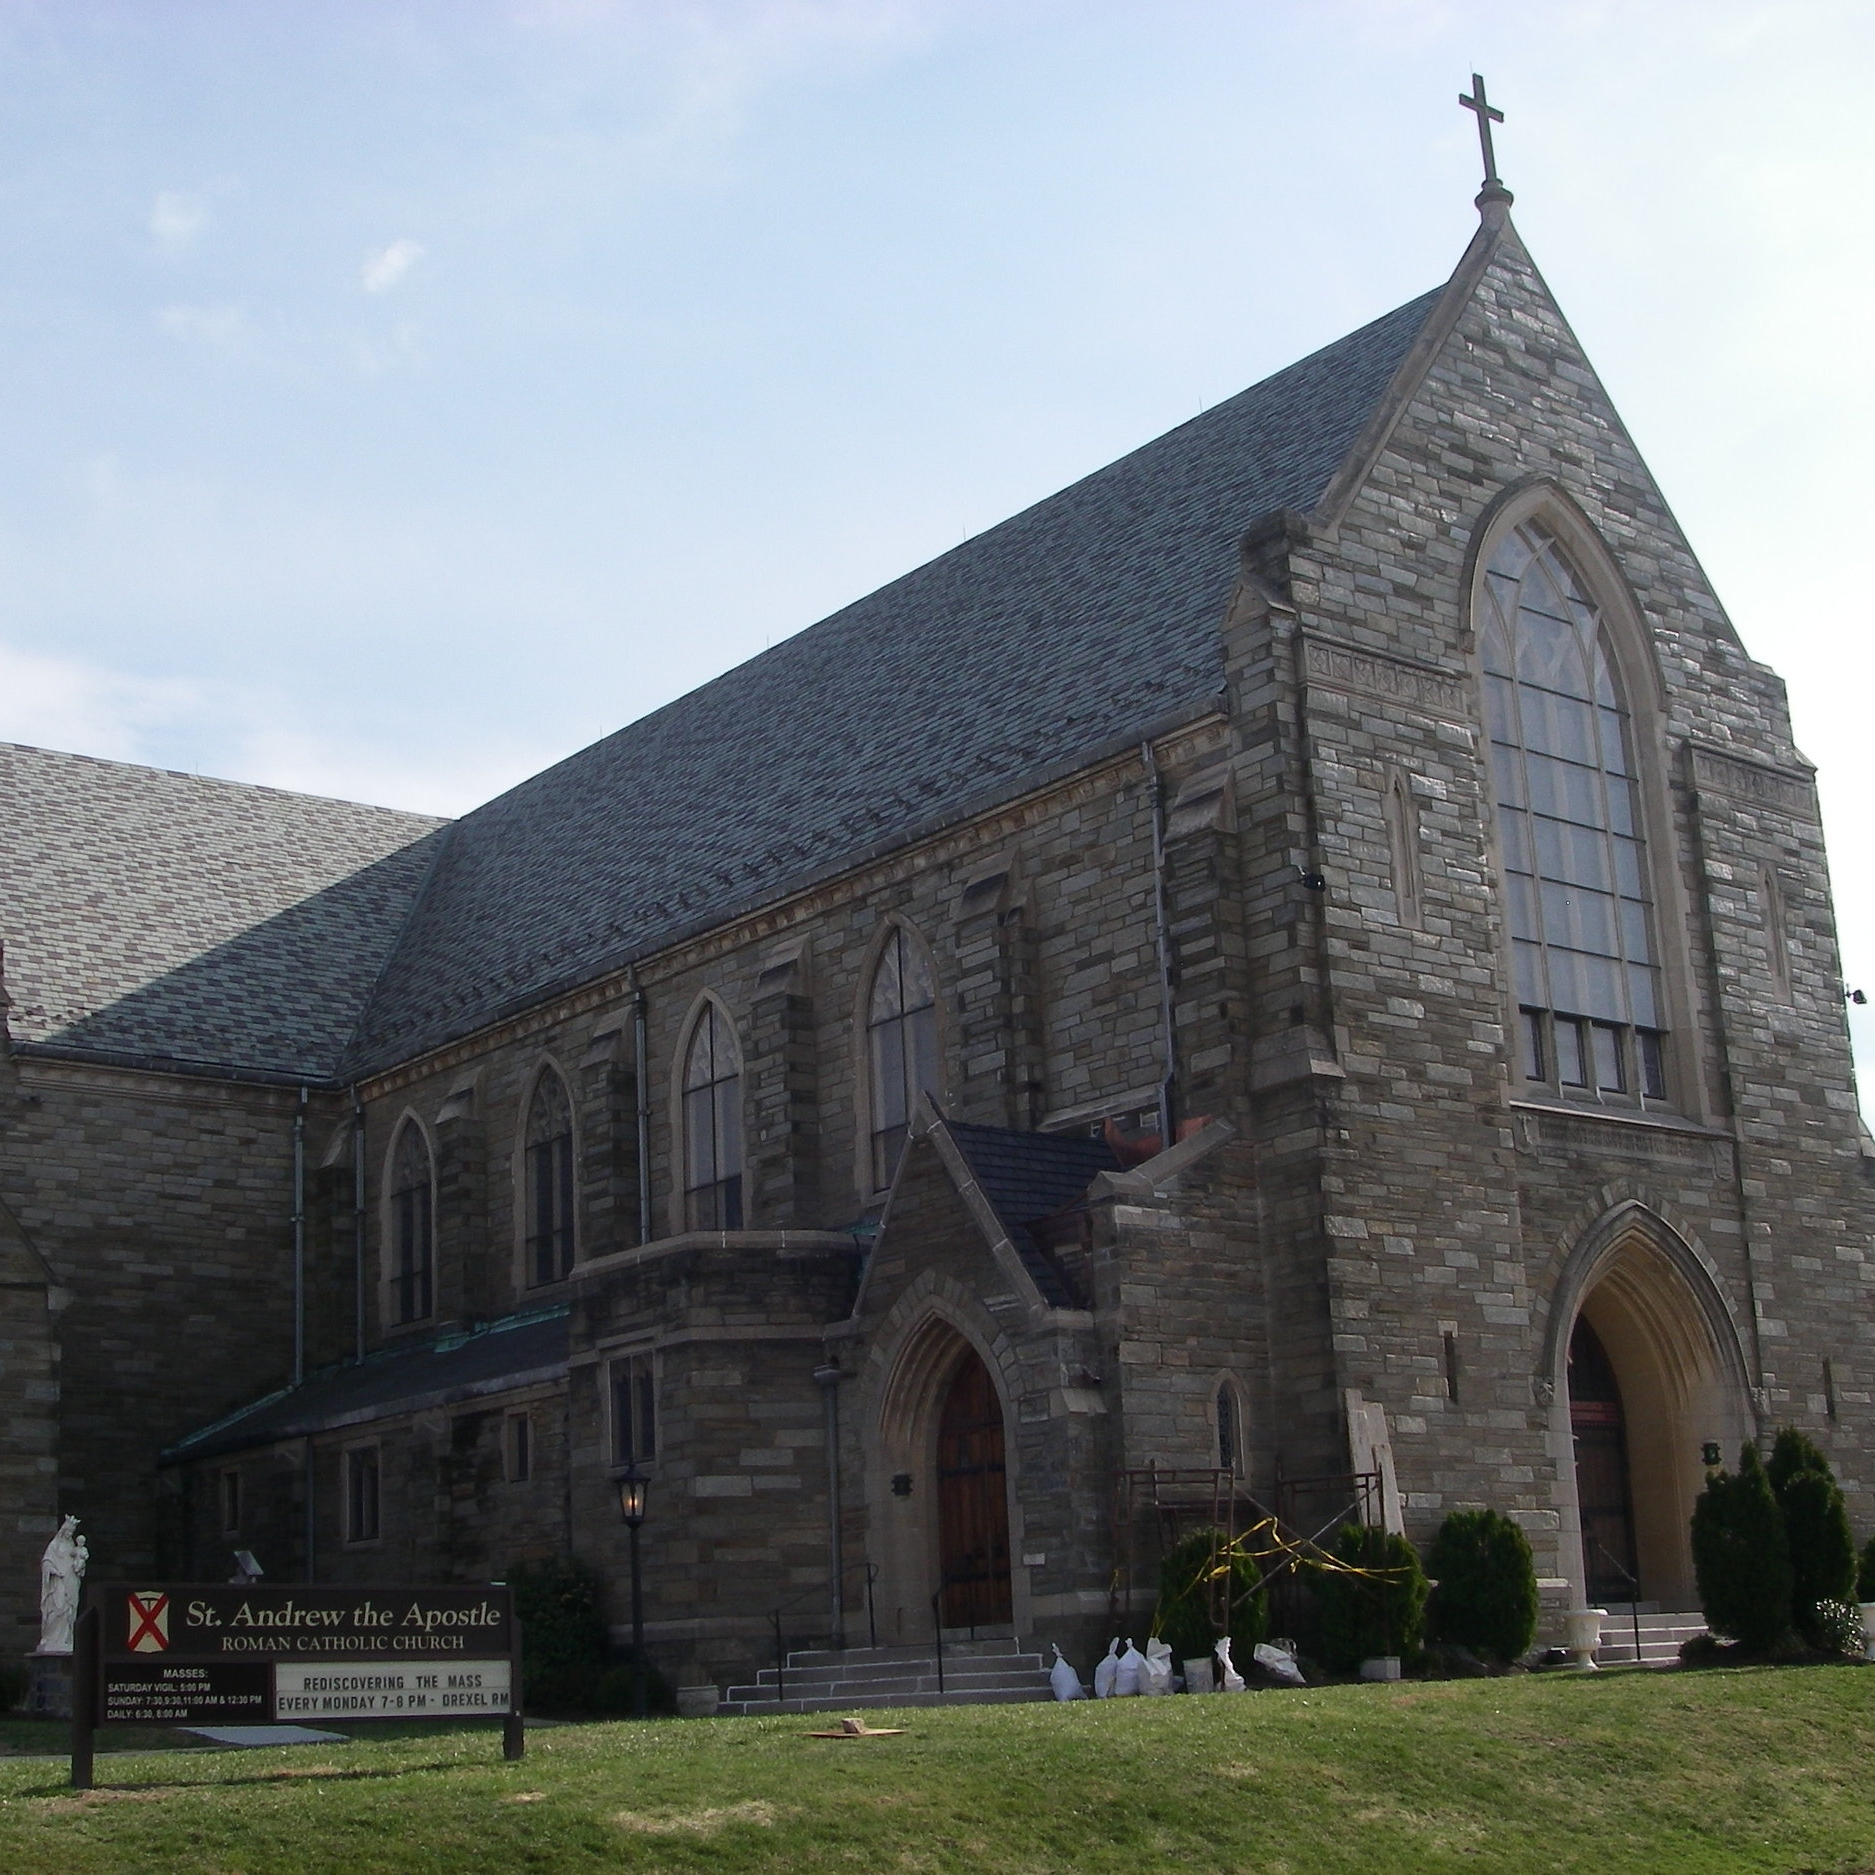 St. Andrew the Apostle Church (Drexel Hill), one of the many religious institutions for which we have provided periodic concierge slate replacement and gutter repair services.